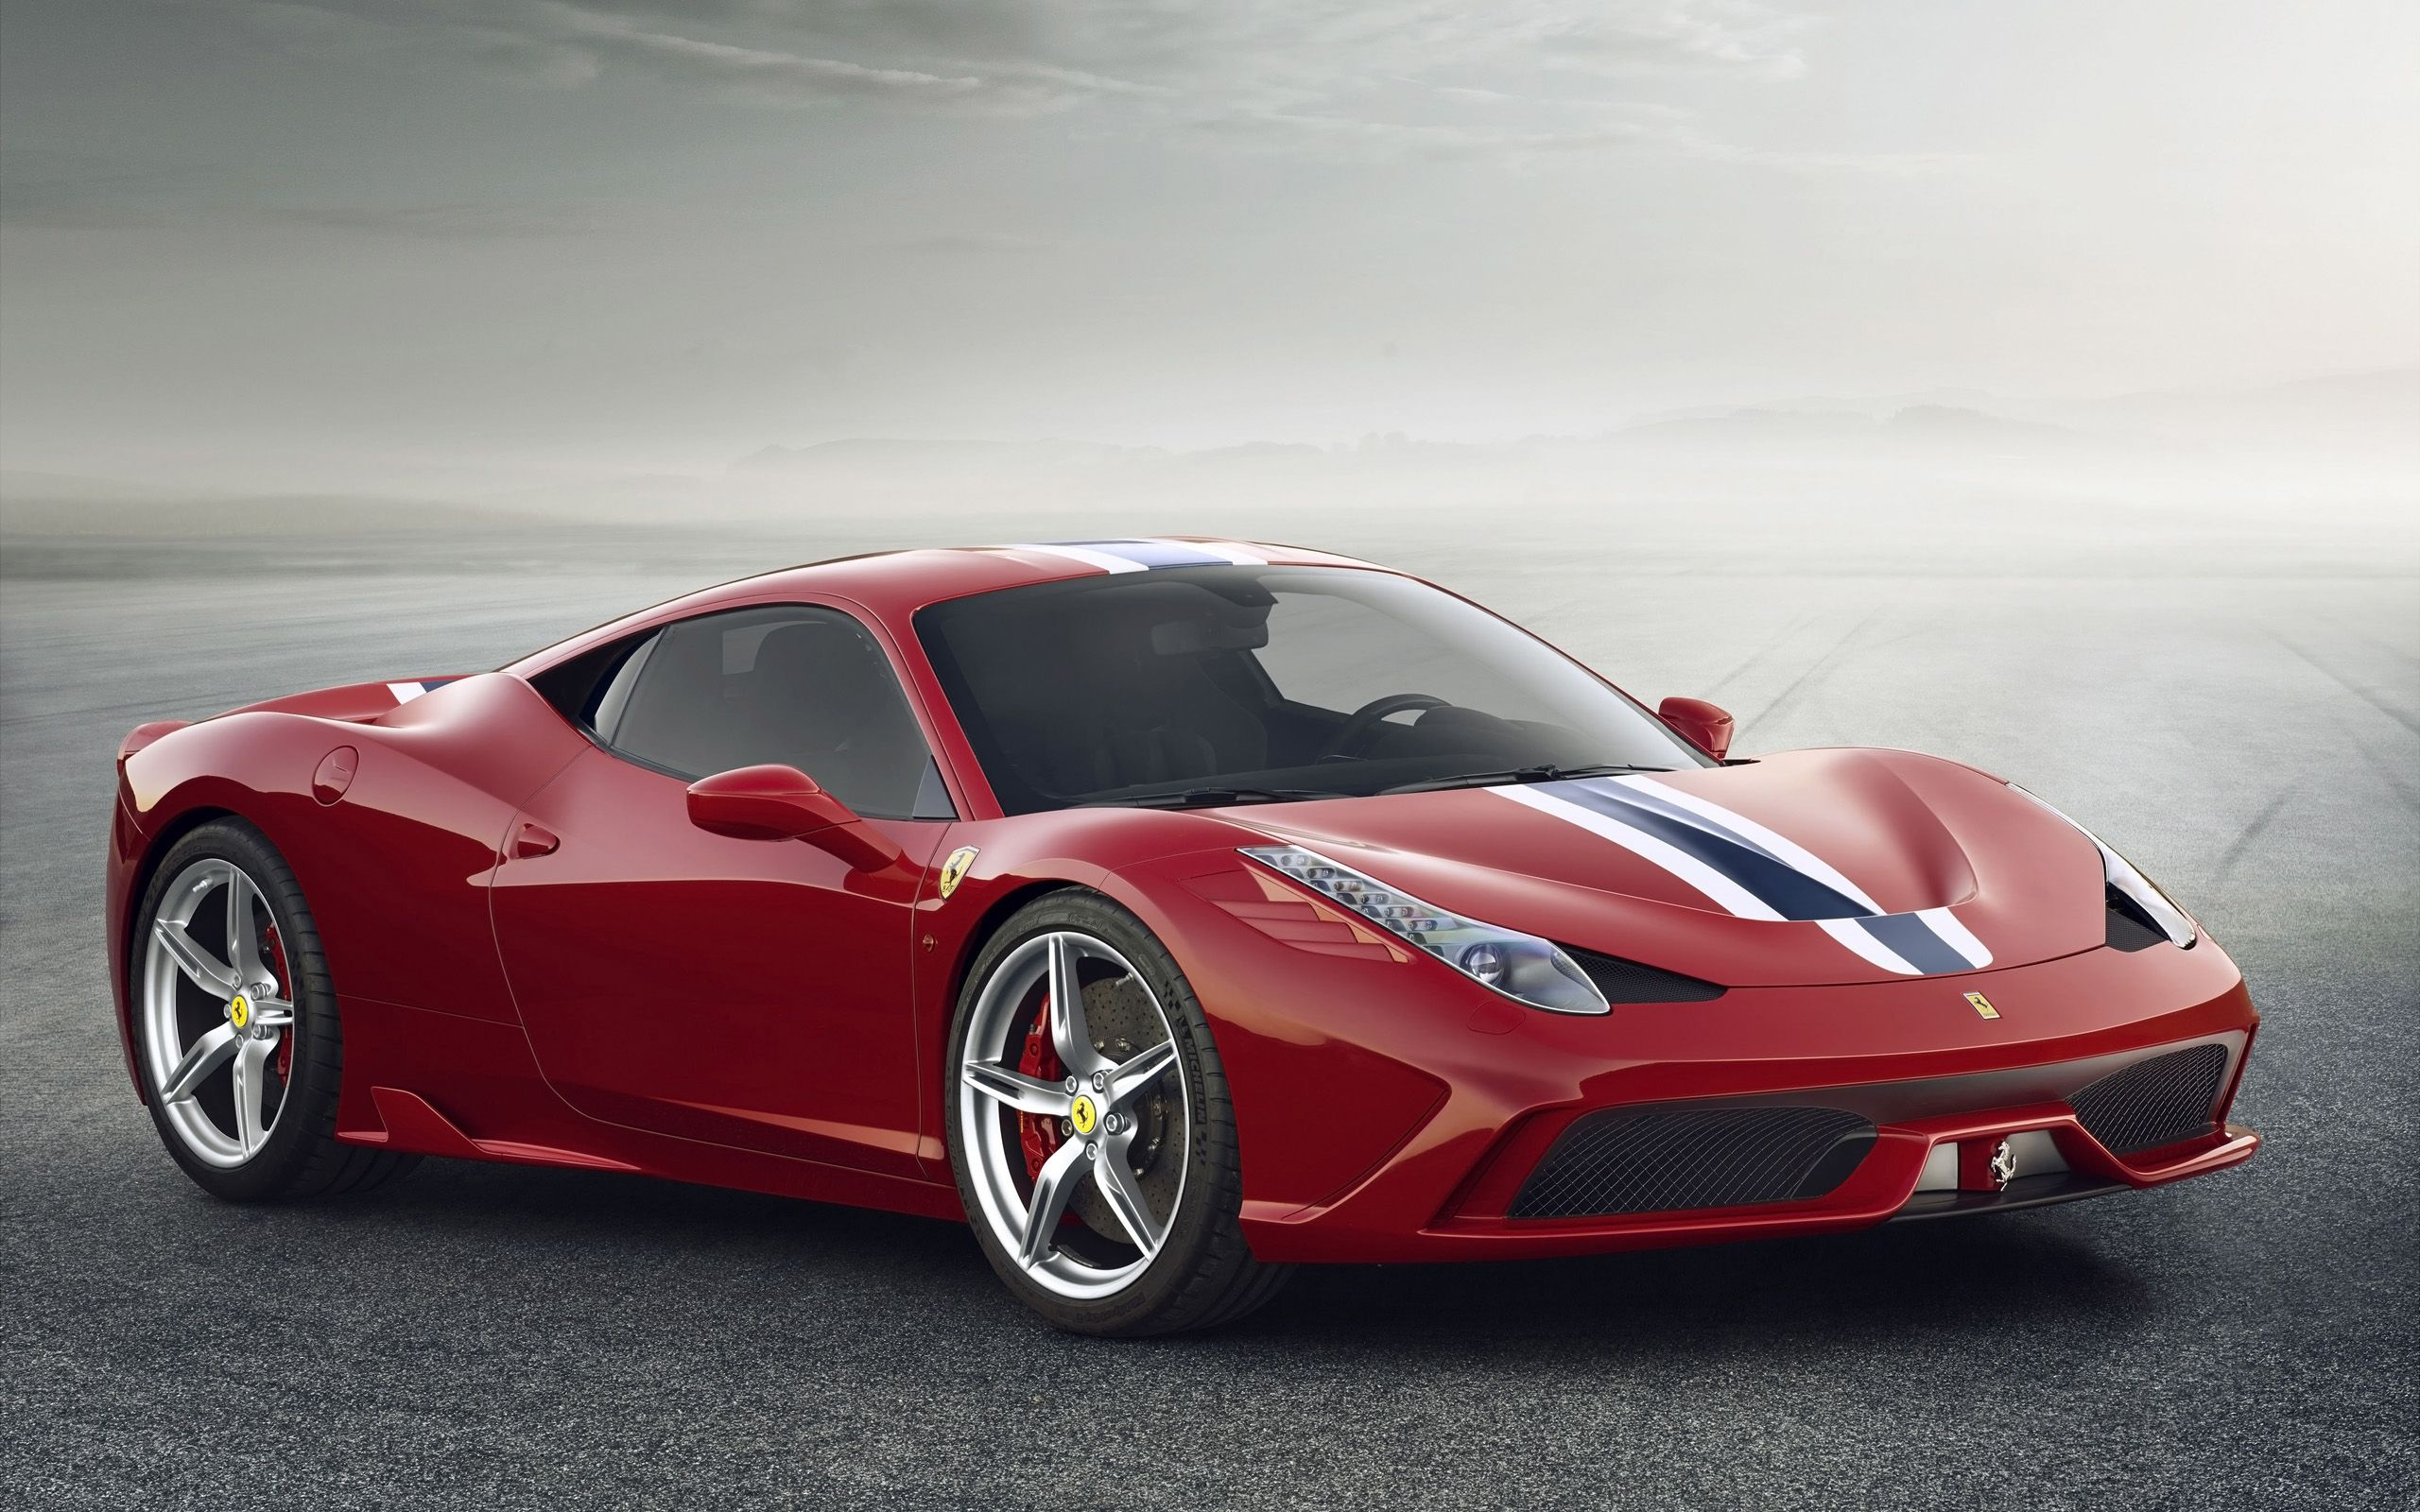 Ferrari the italian sports car manufacturer manufactured one of the most admired racing car known as the ferrari 458 speciale being powered by a engine